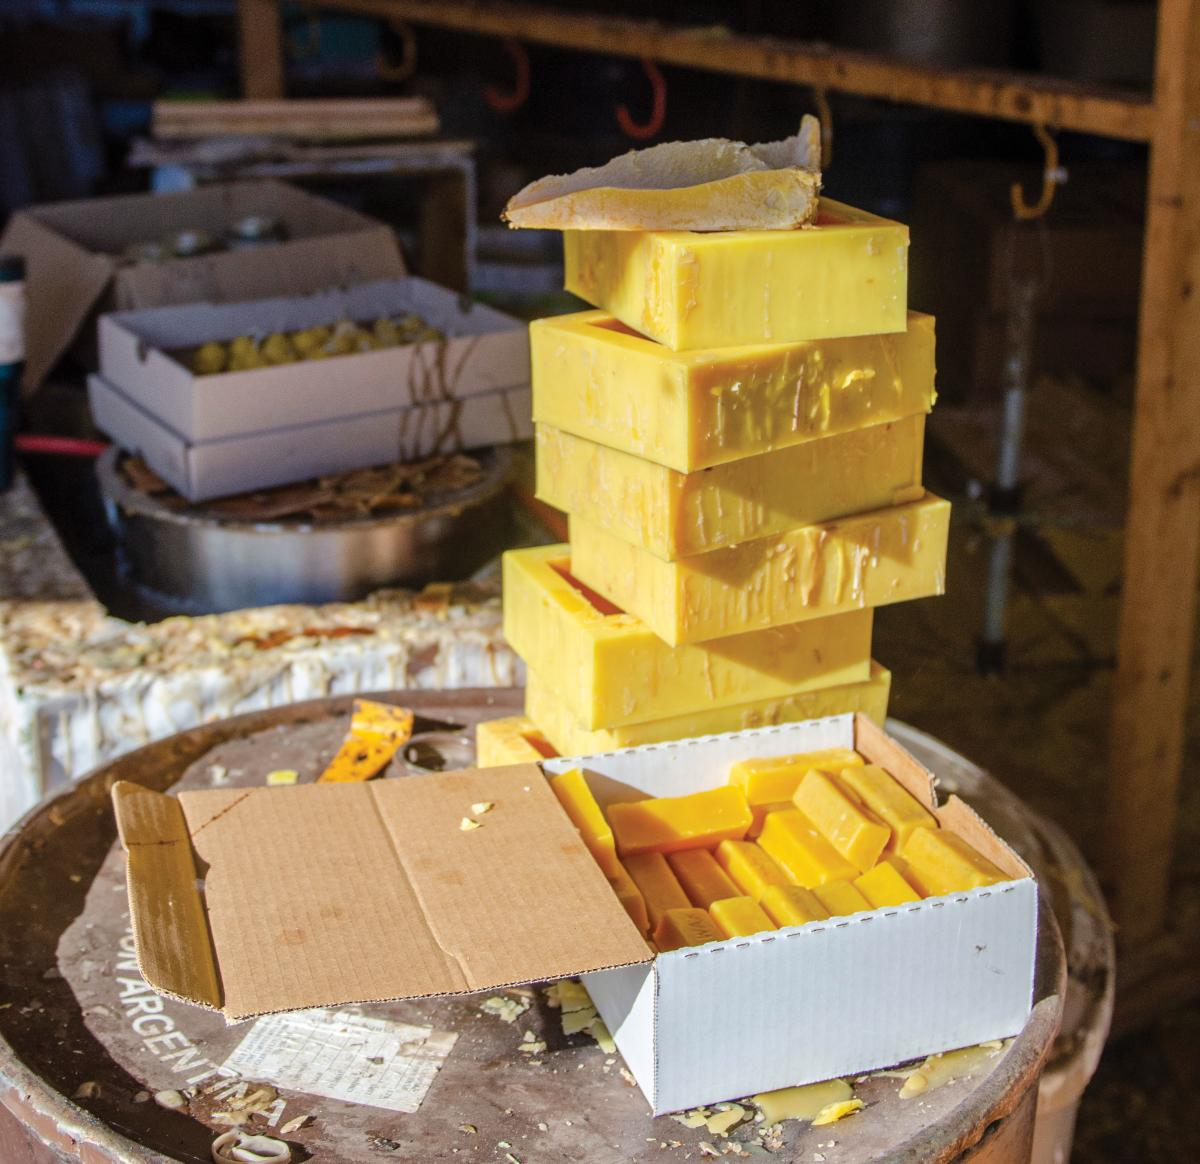 The Hays Farm produces beeswax and other bee products.